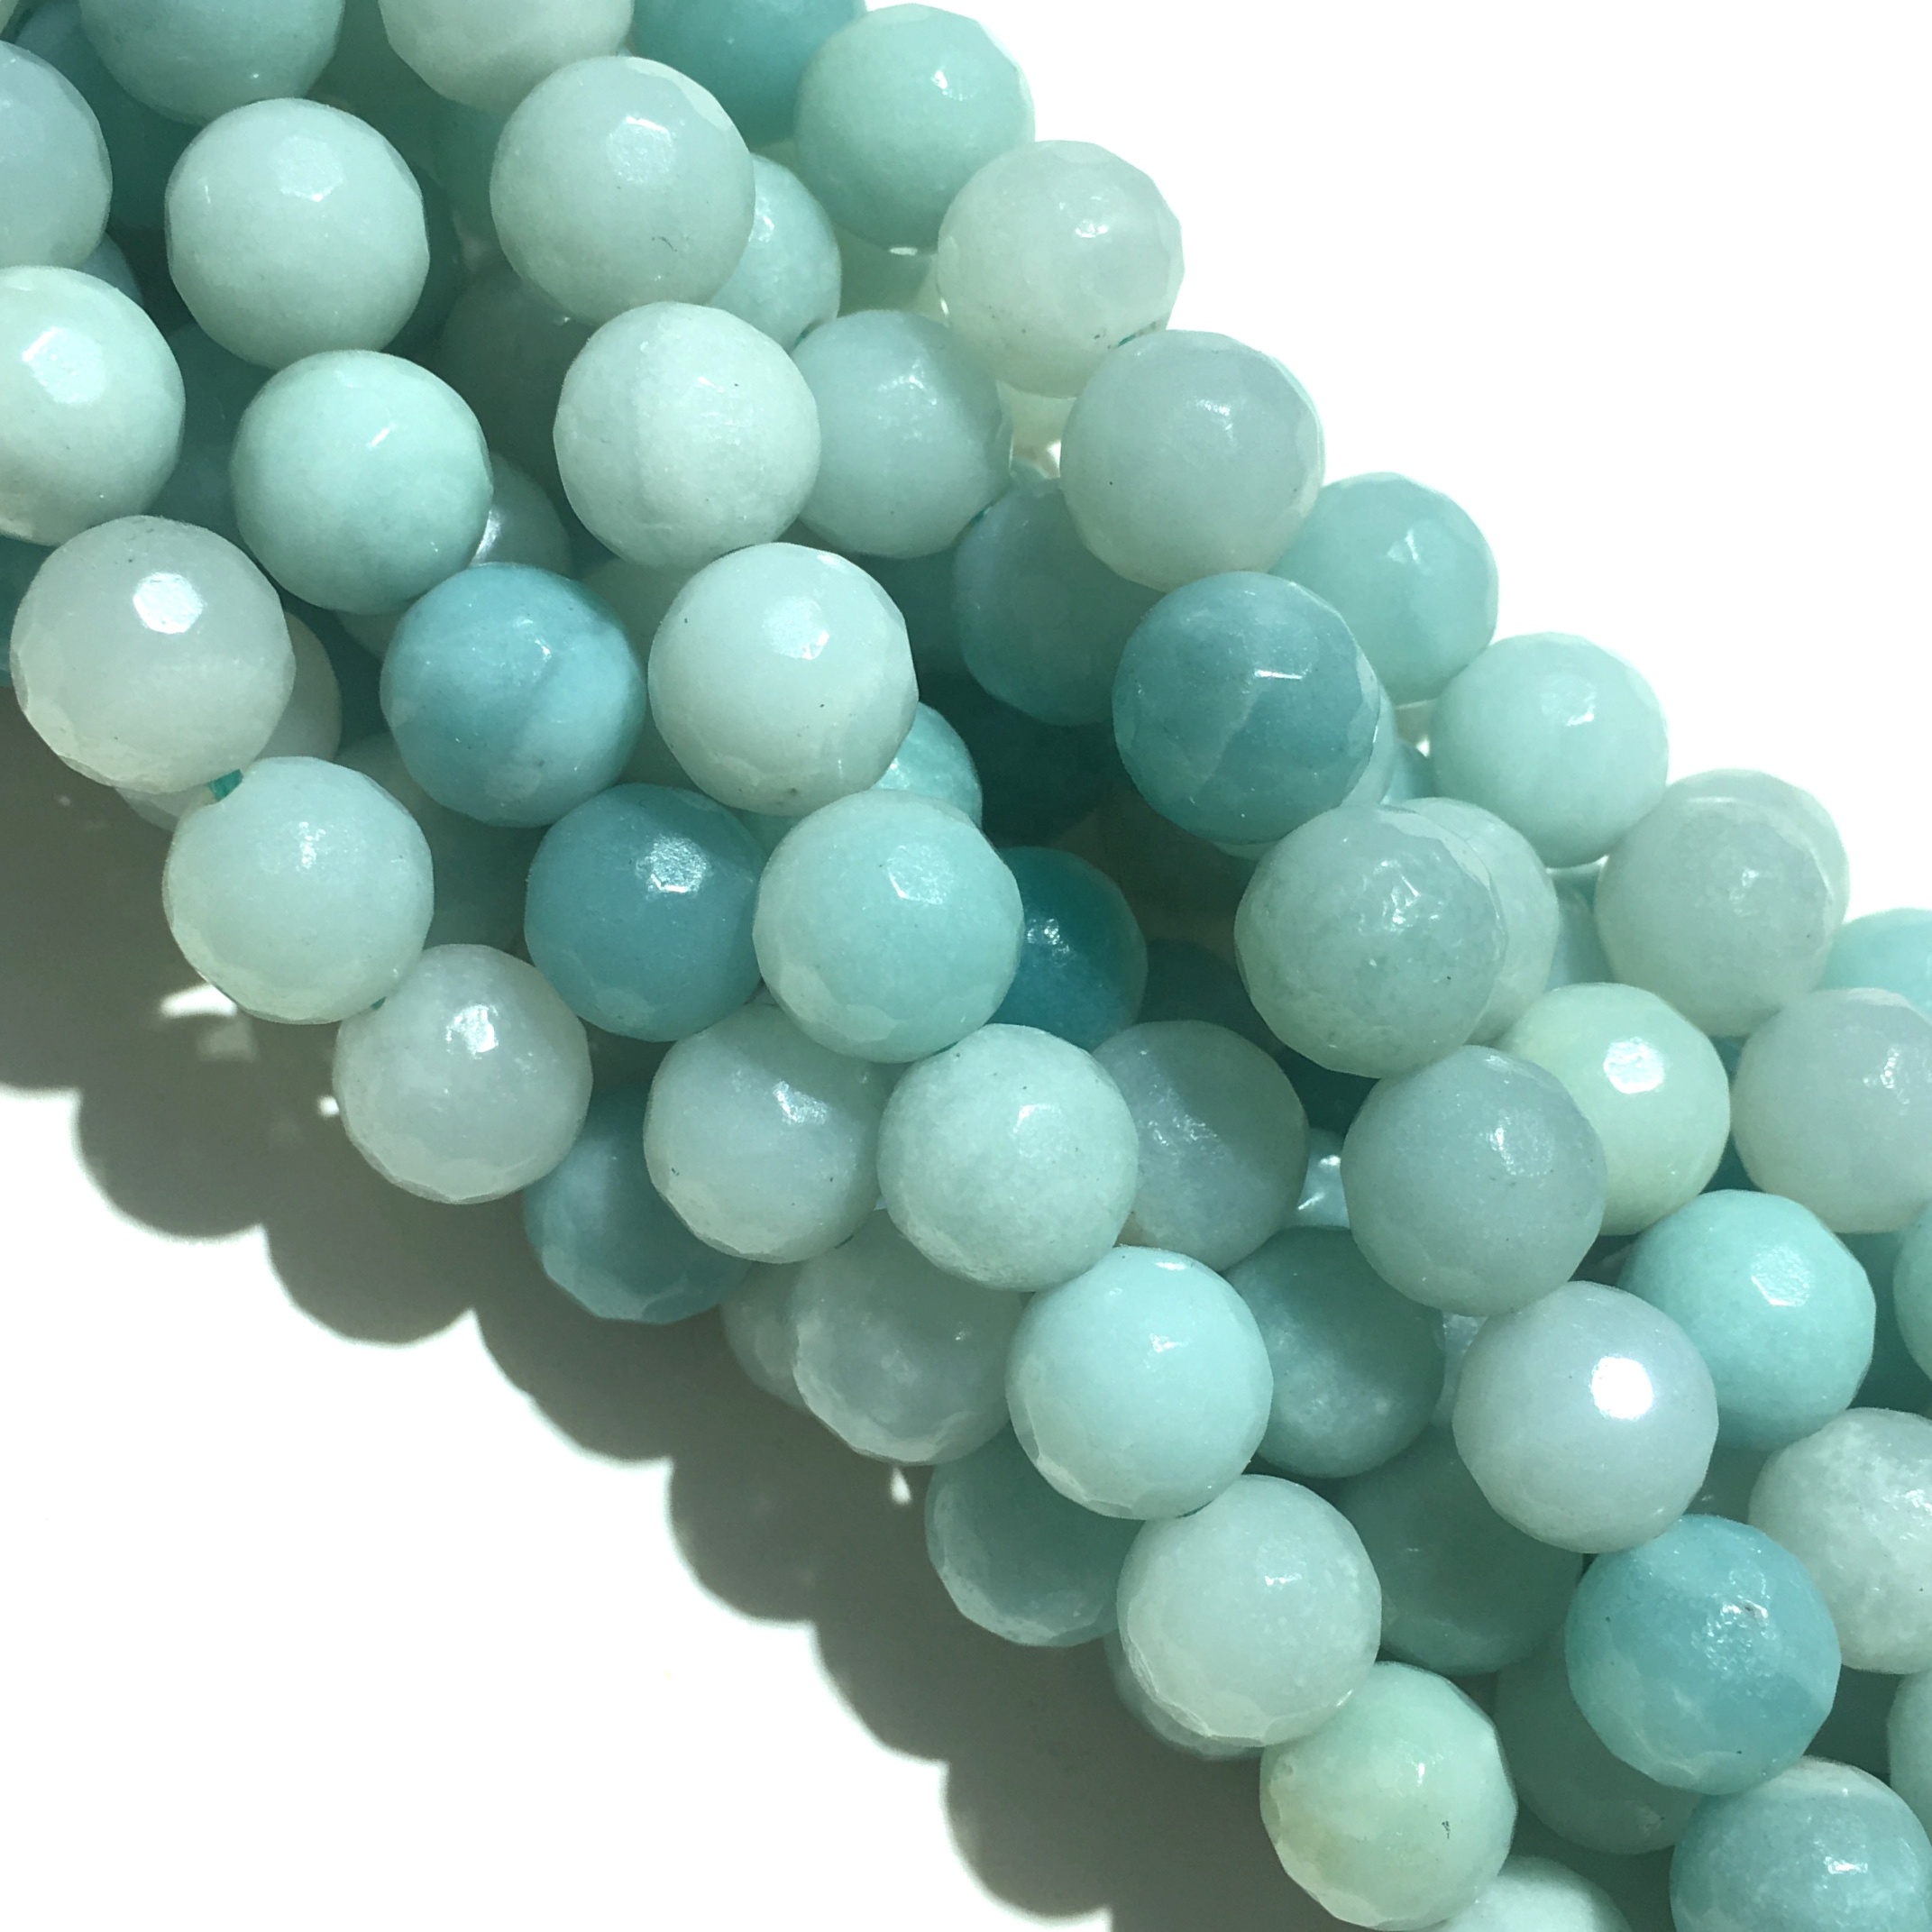 Russian Amazonite Natural Faceted Round Loose Beads Healing Energy Gemstone for Jewelry Making DIY Bracelet & Necklace Design